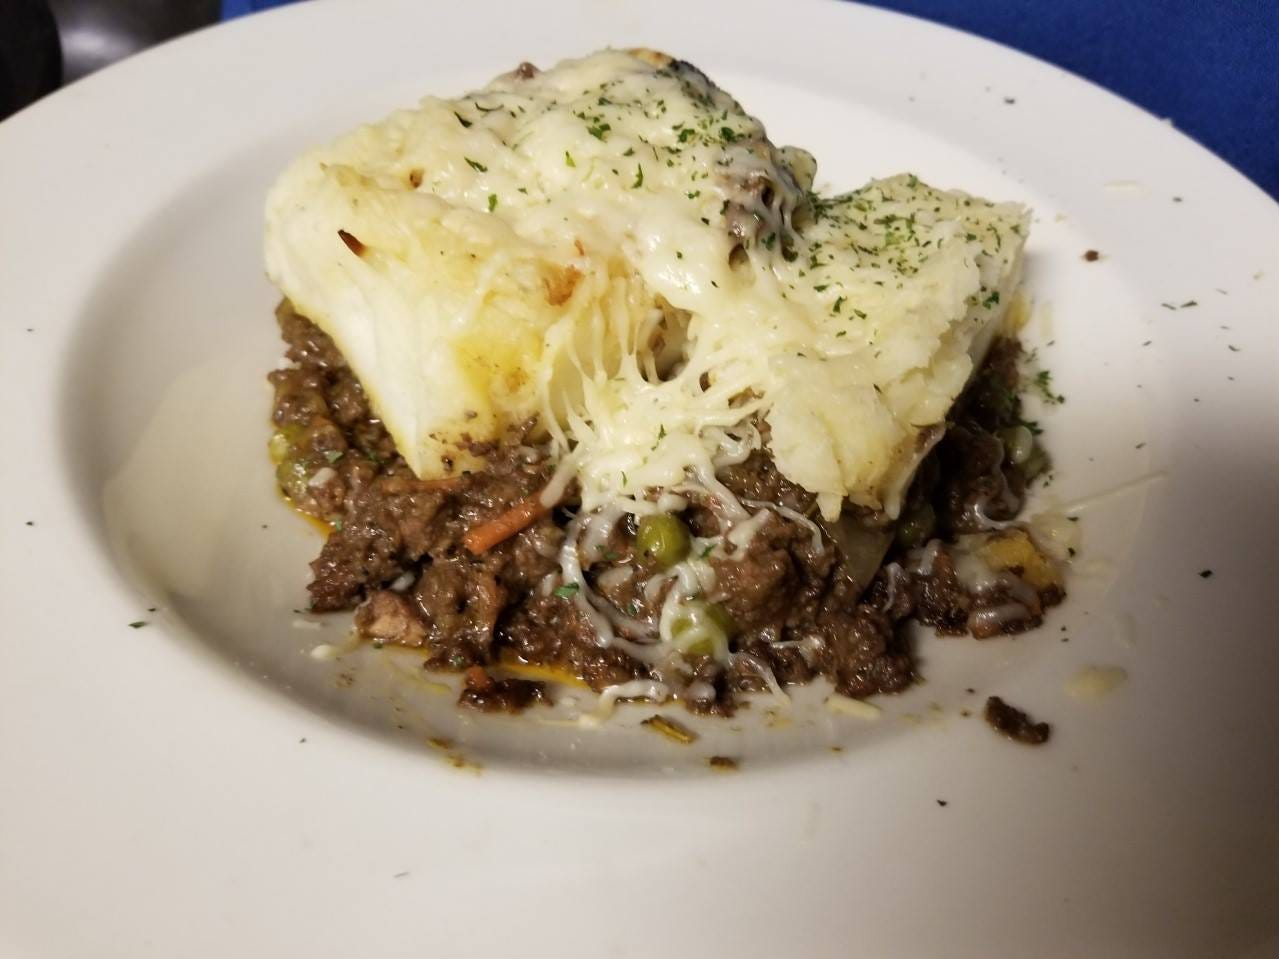 Shepherd's pie has been a longtime Clancey's tradition, and it remains on the menu at the Fort Myers restaurant.